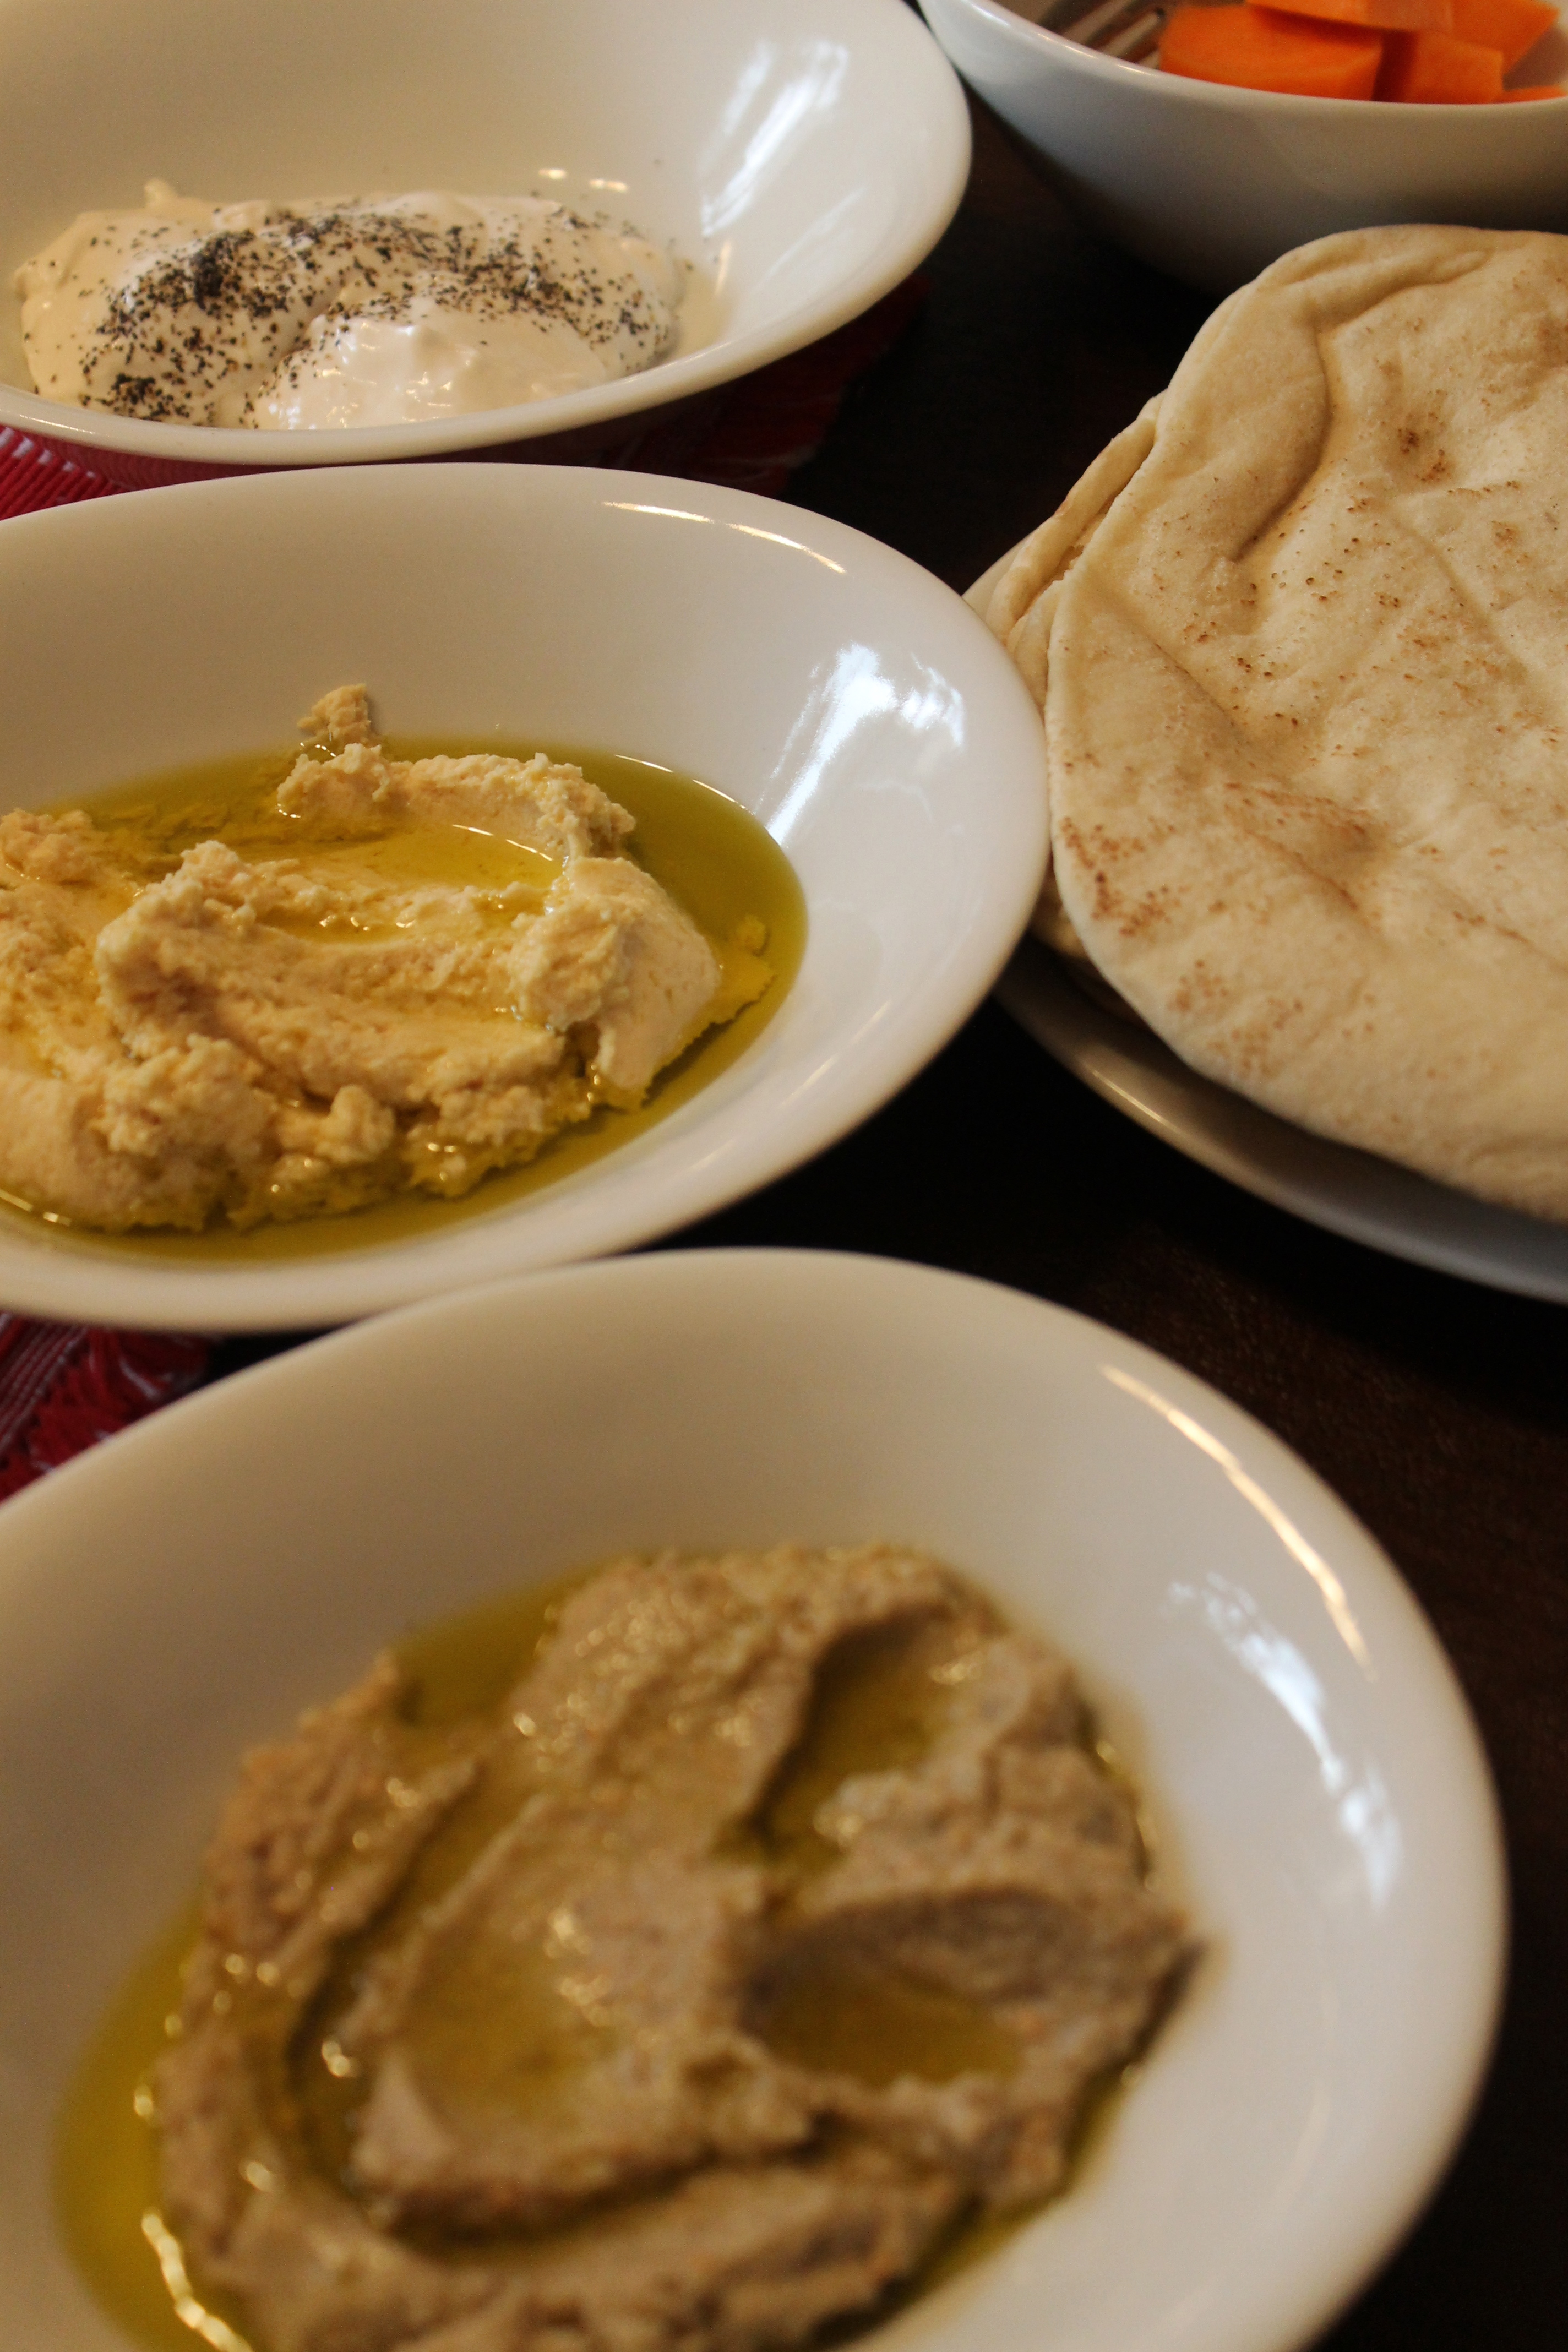 Hummus, babaganoush, labnah, and pita bread.